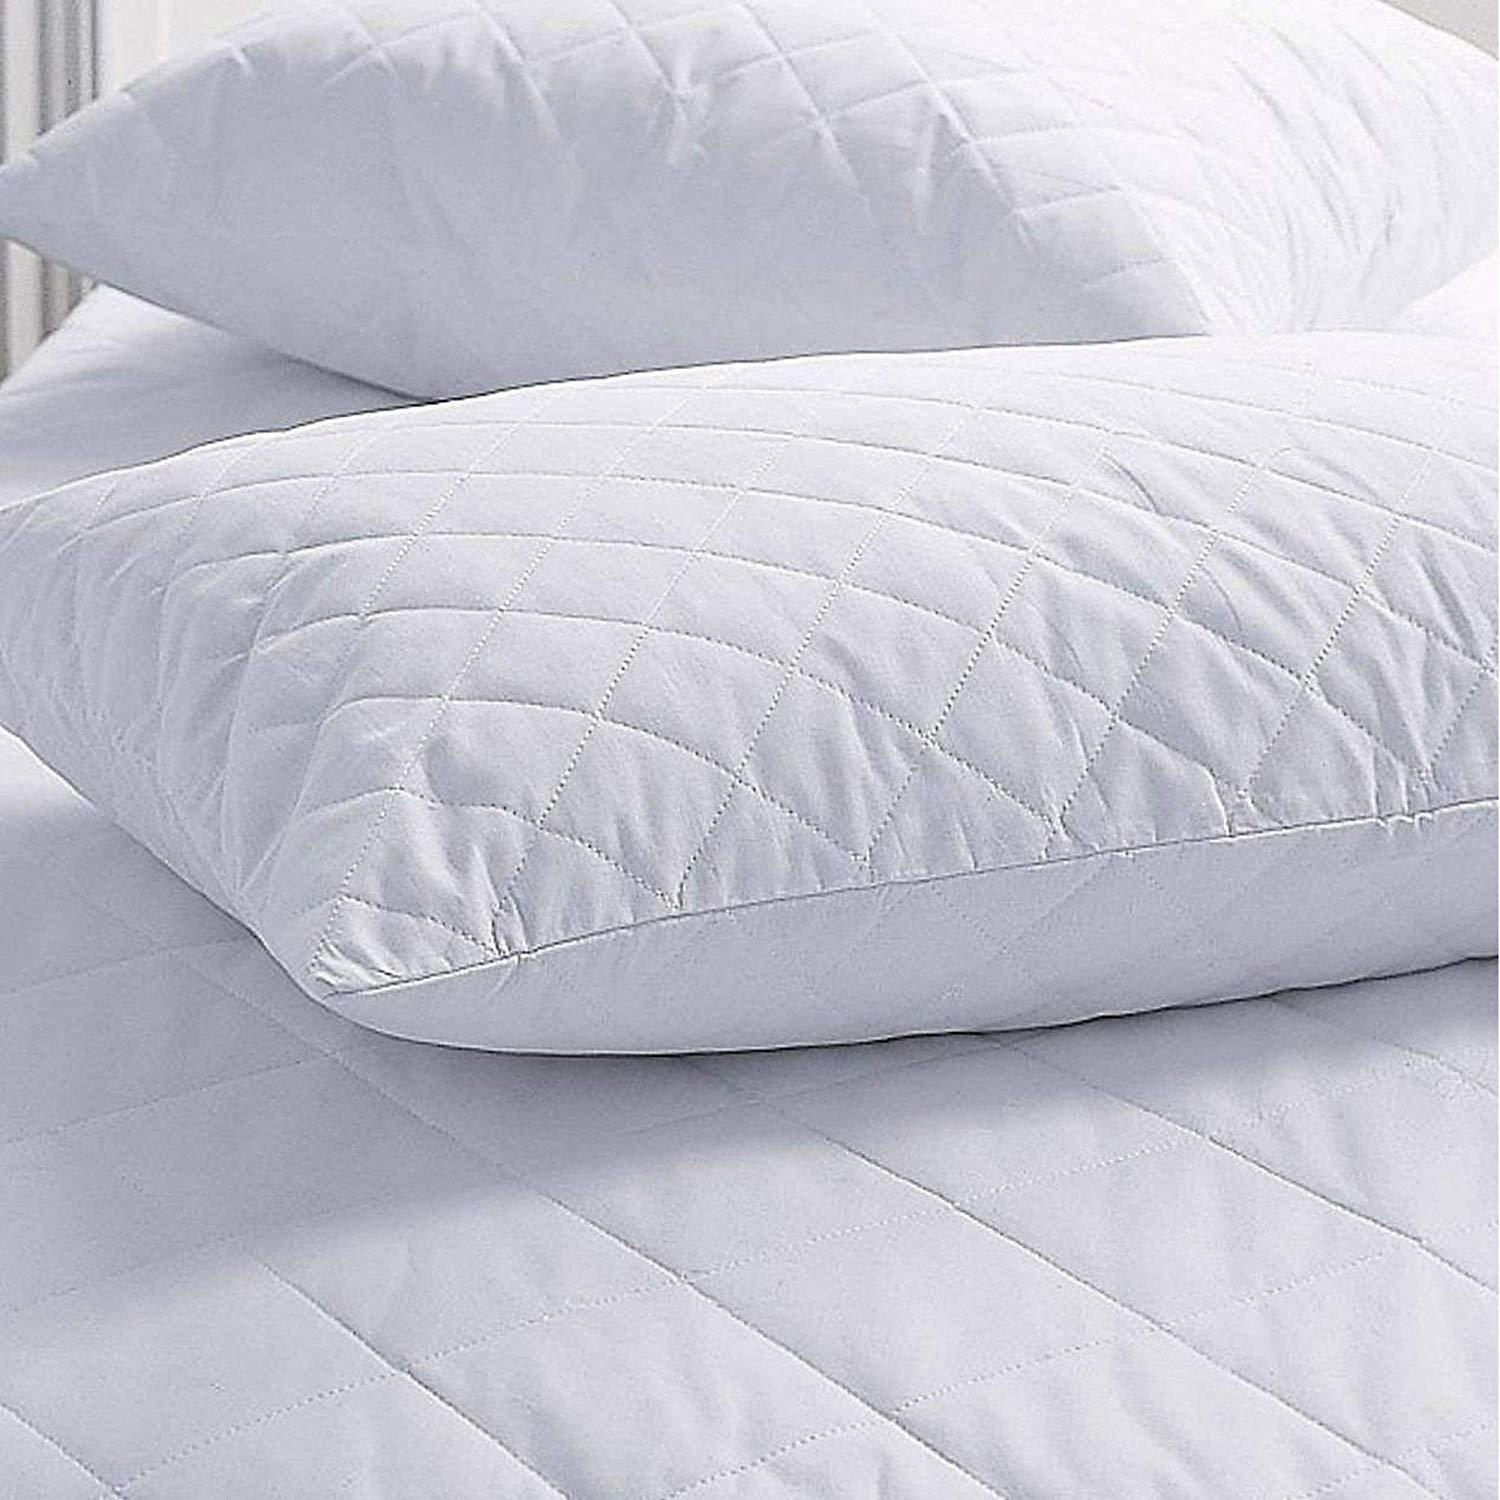 Quilted Deluxe Hollowfibre Filled Comfortable Pillow